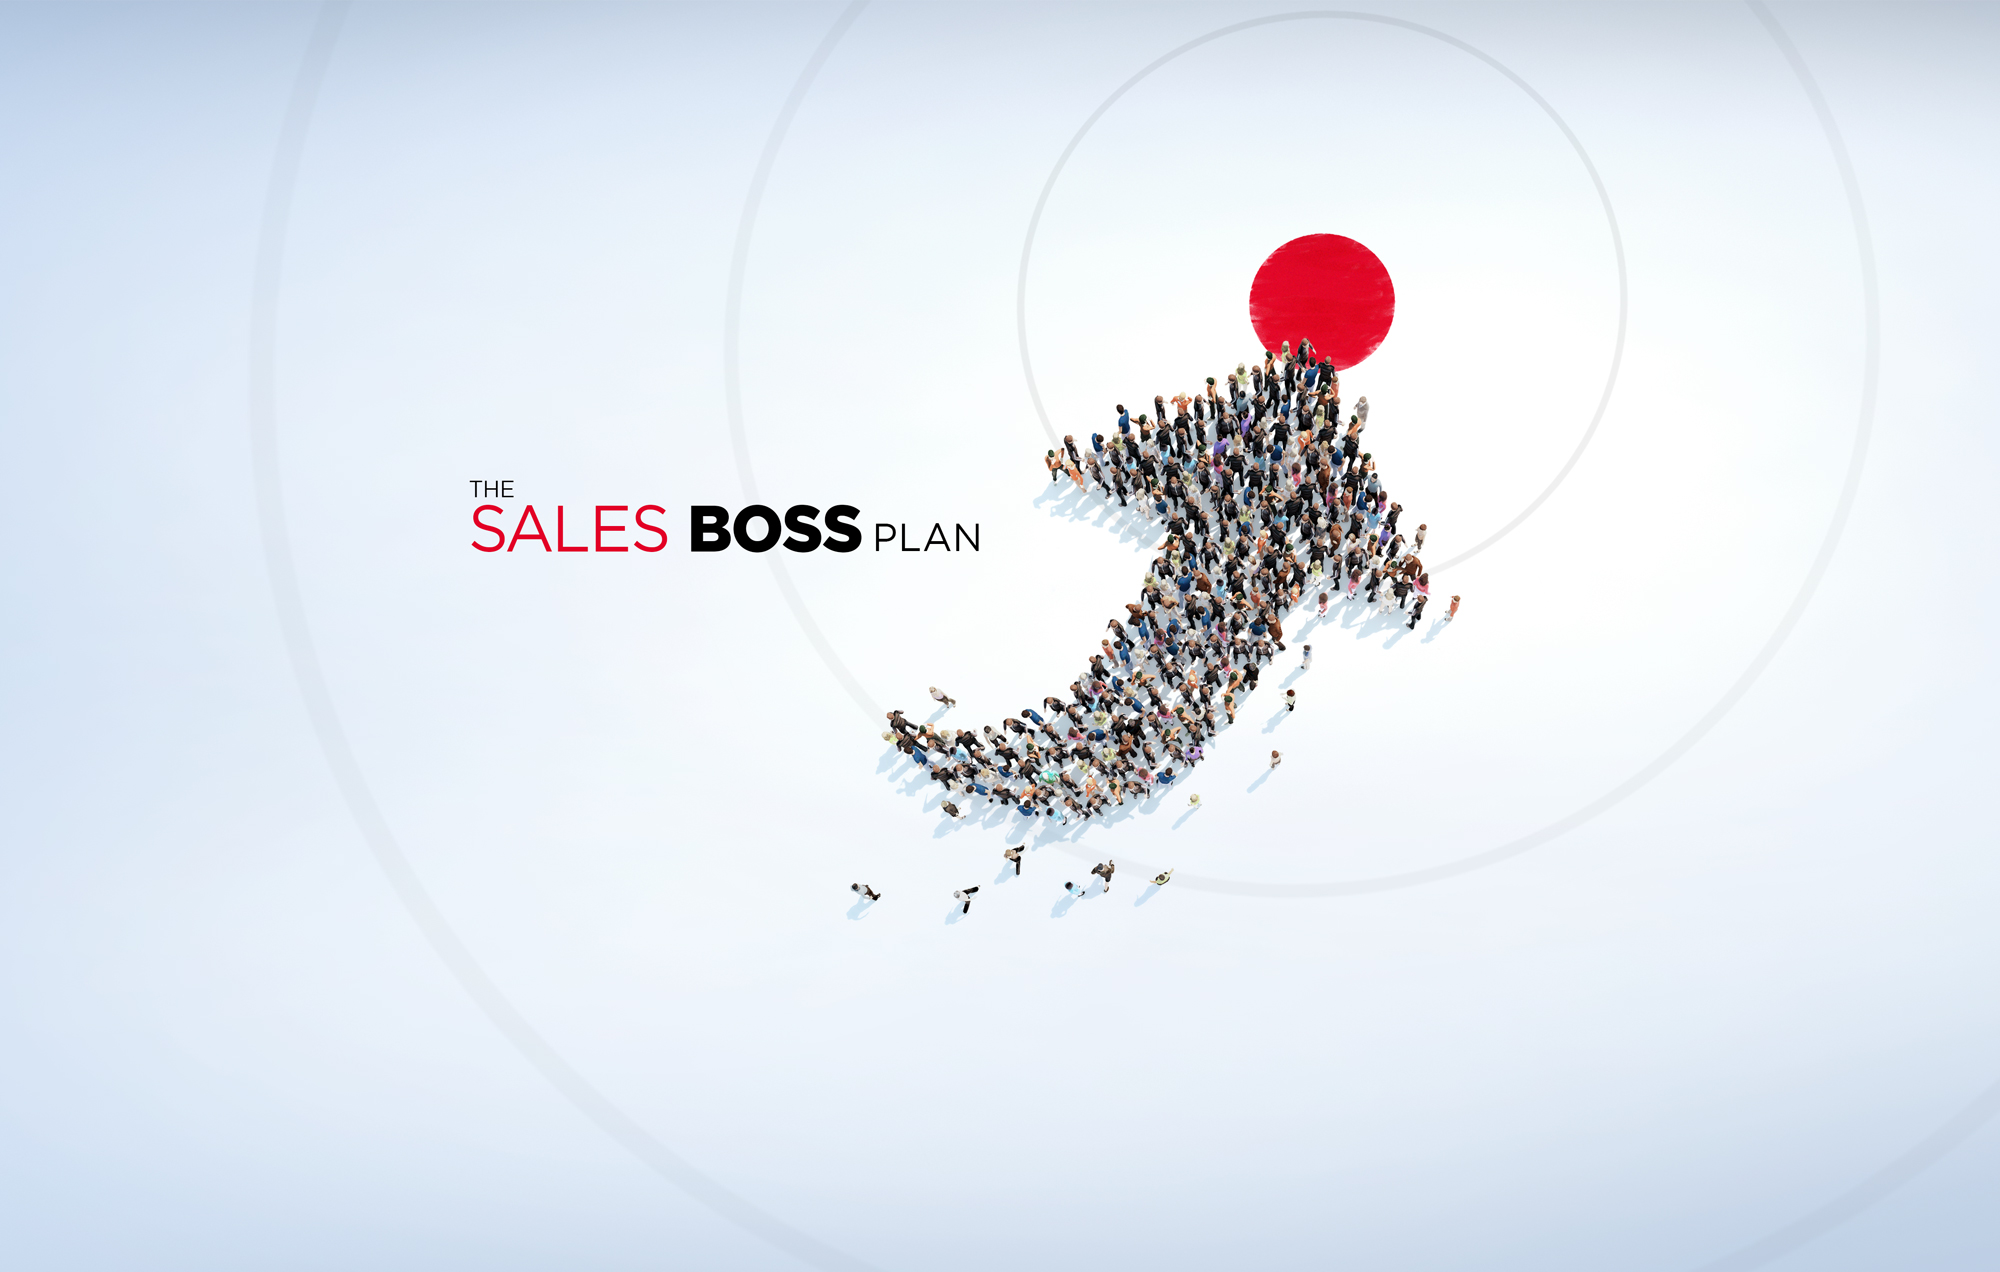 THE-SALES-BOSS-PLAN-BANNER-1.jpg